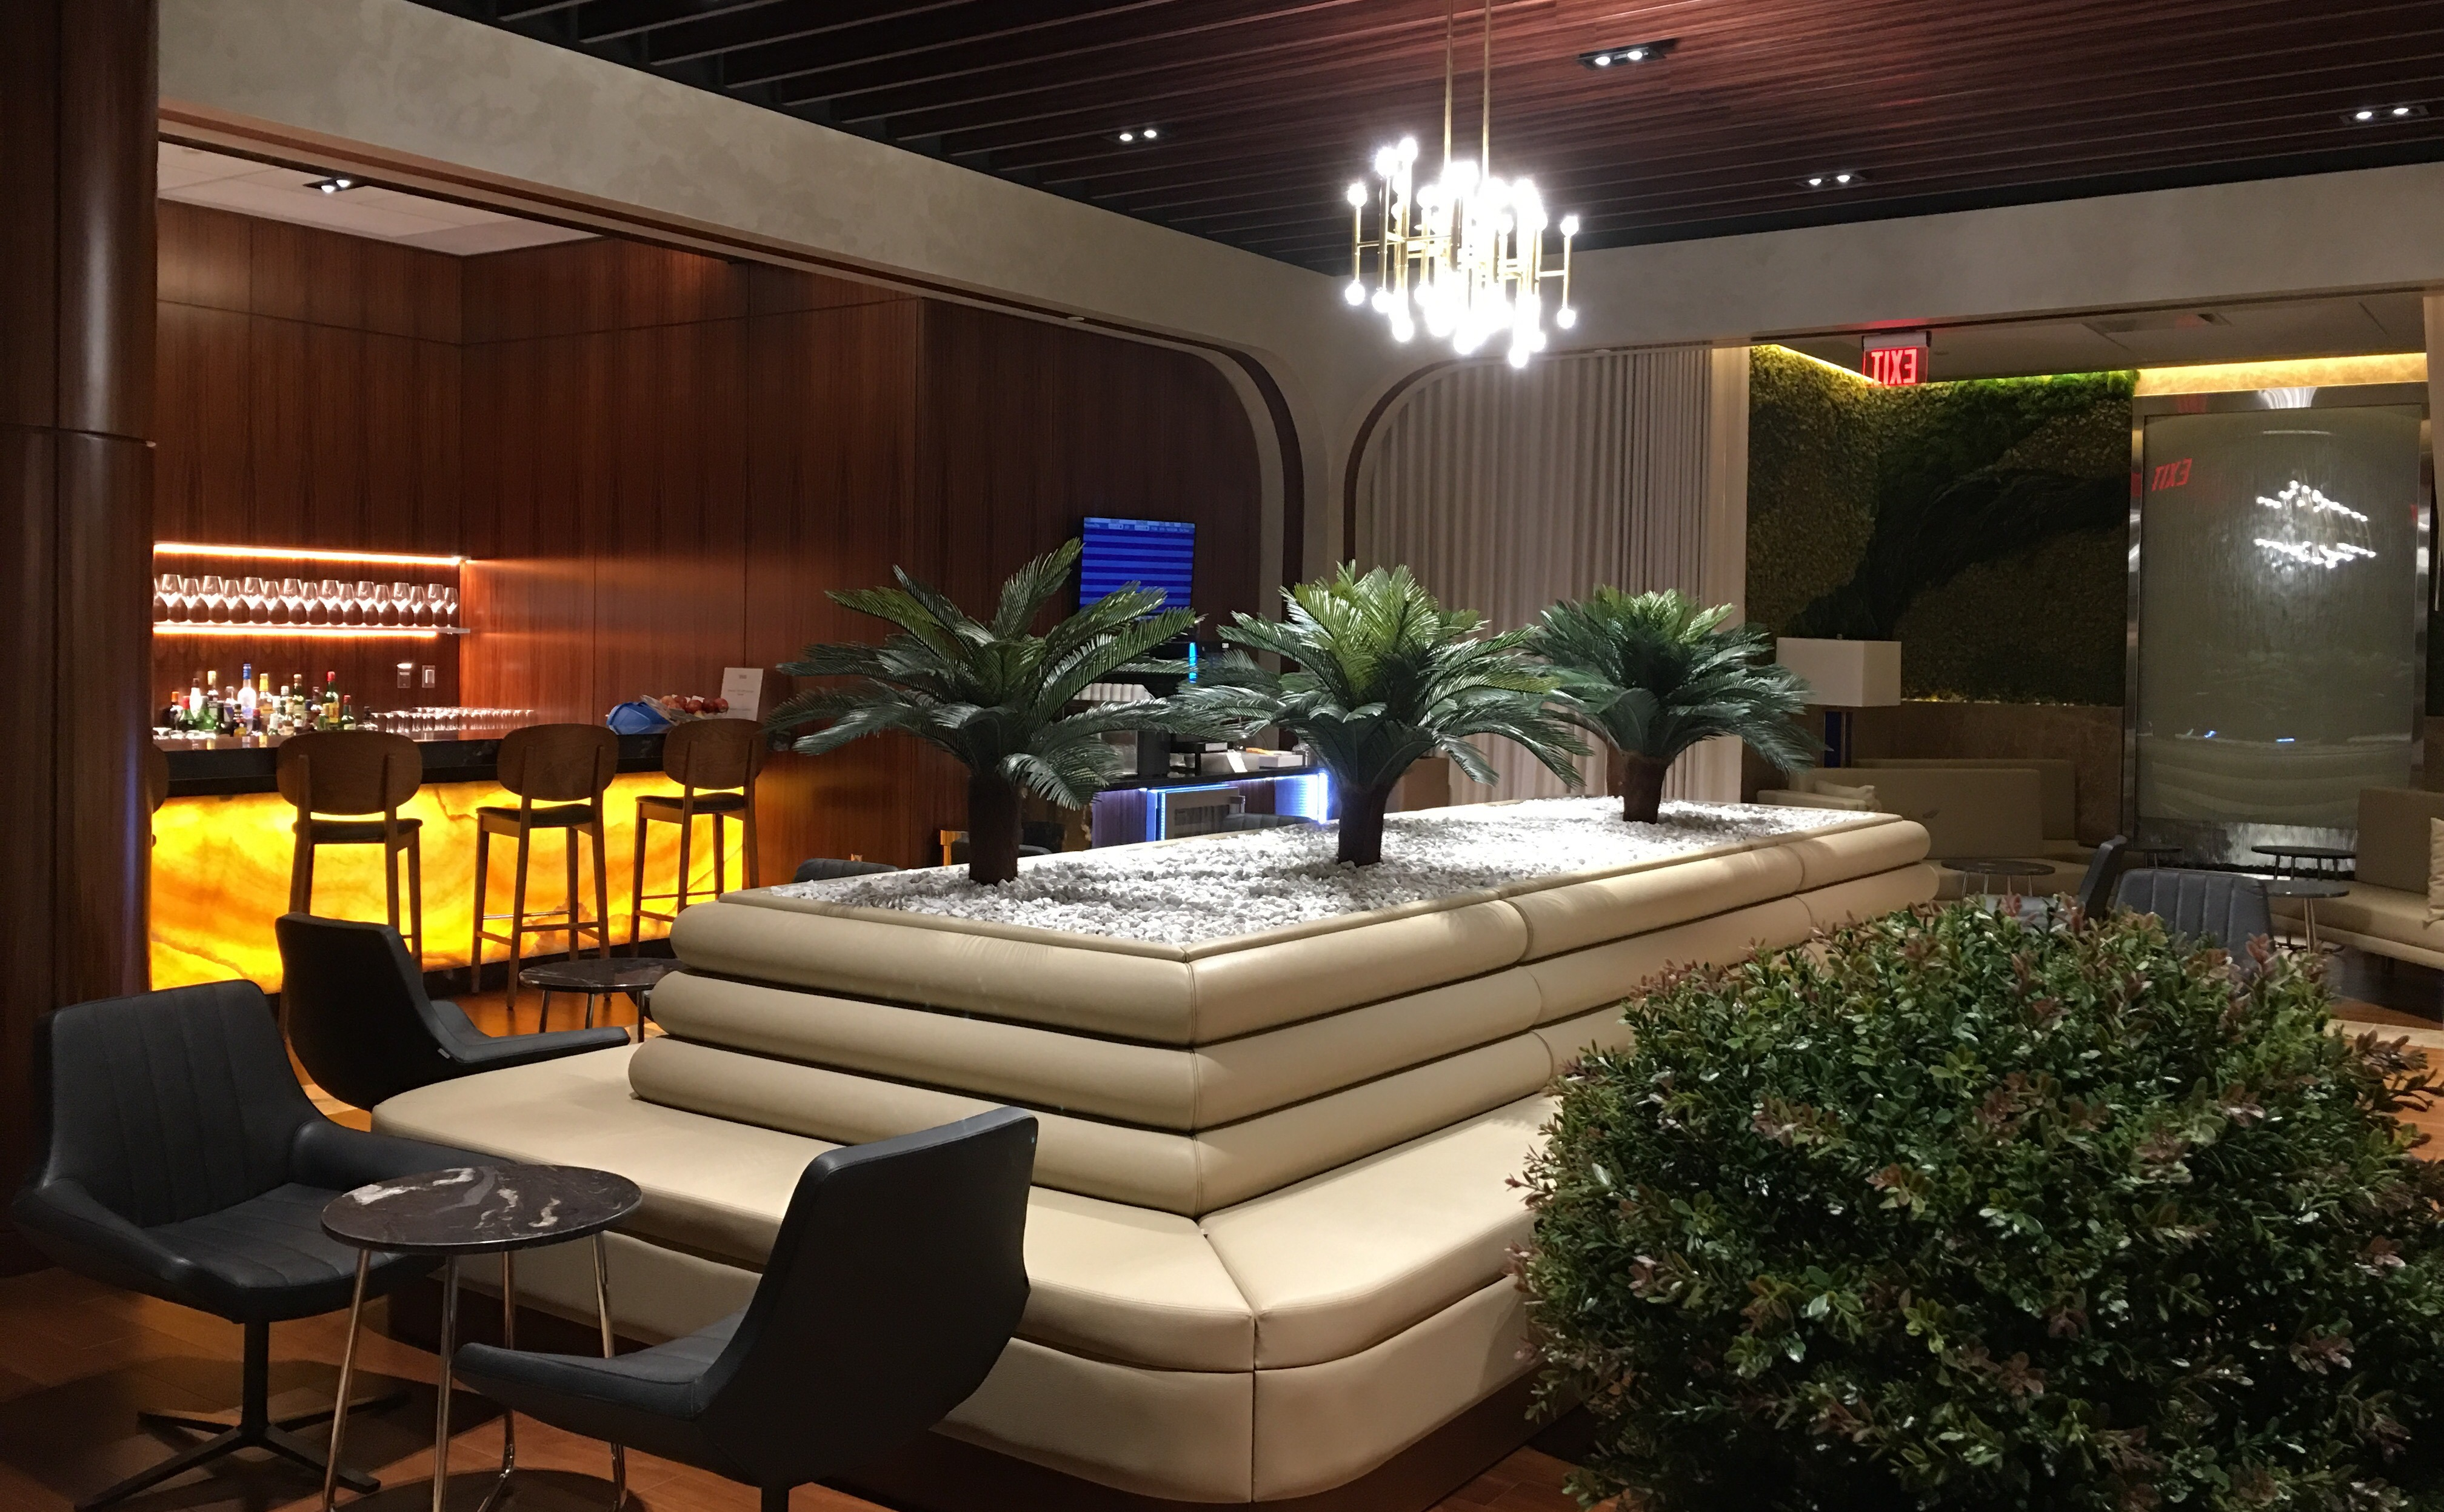 The Turkish Airlines Lounge Washington DC: An Inside Look-post-image